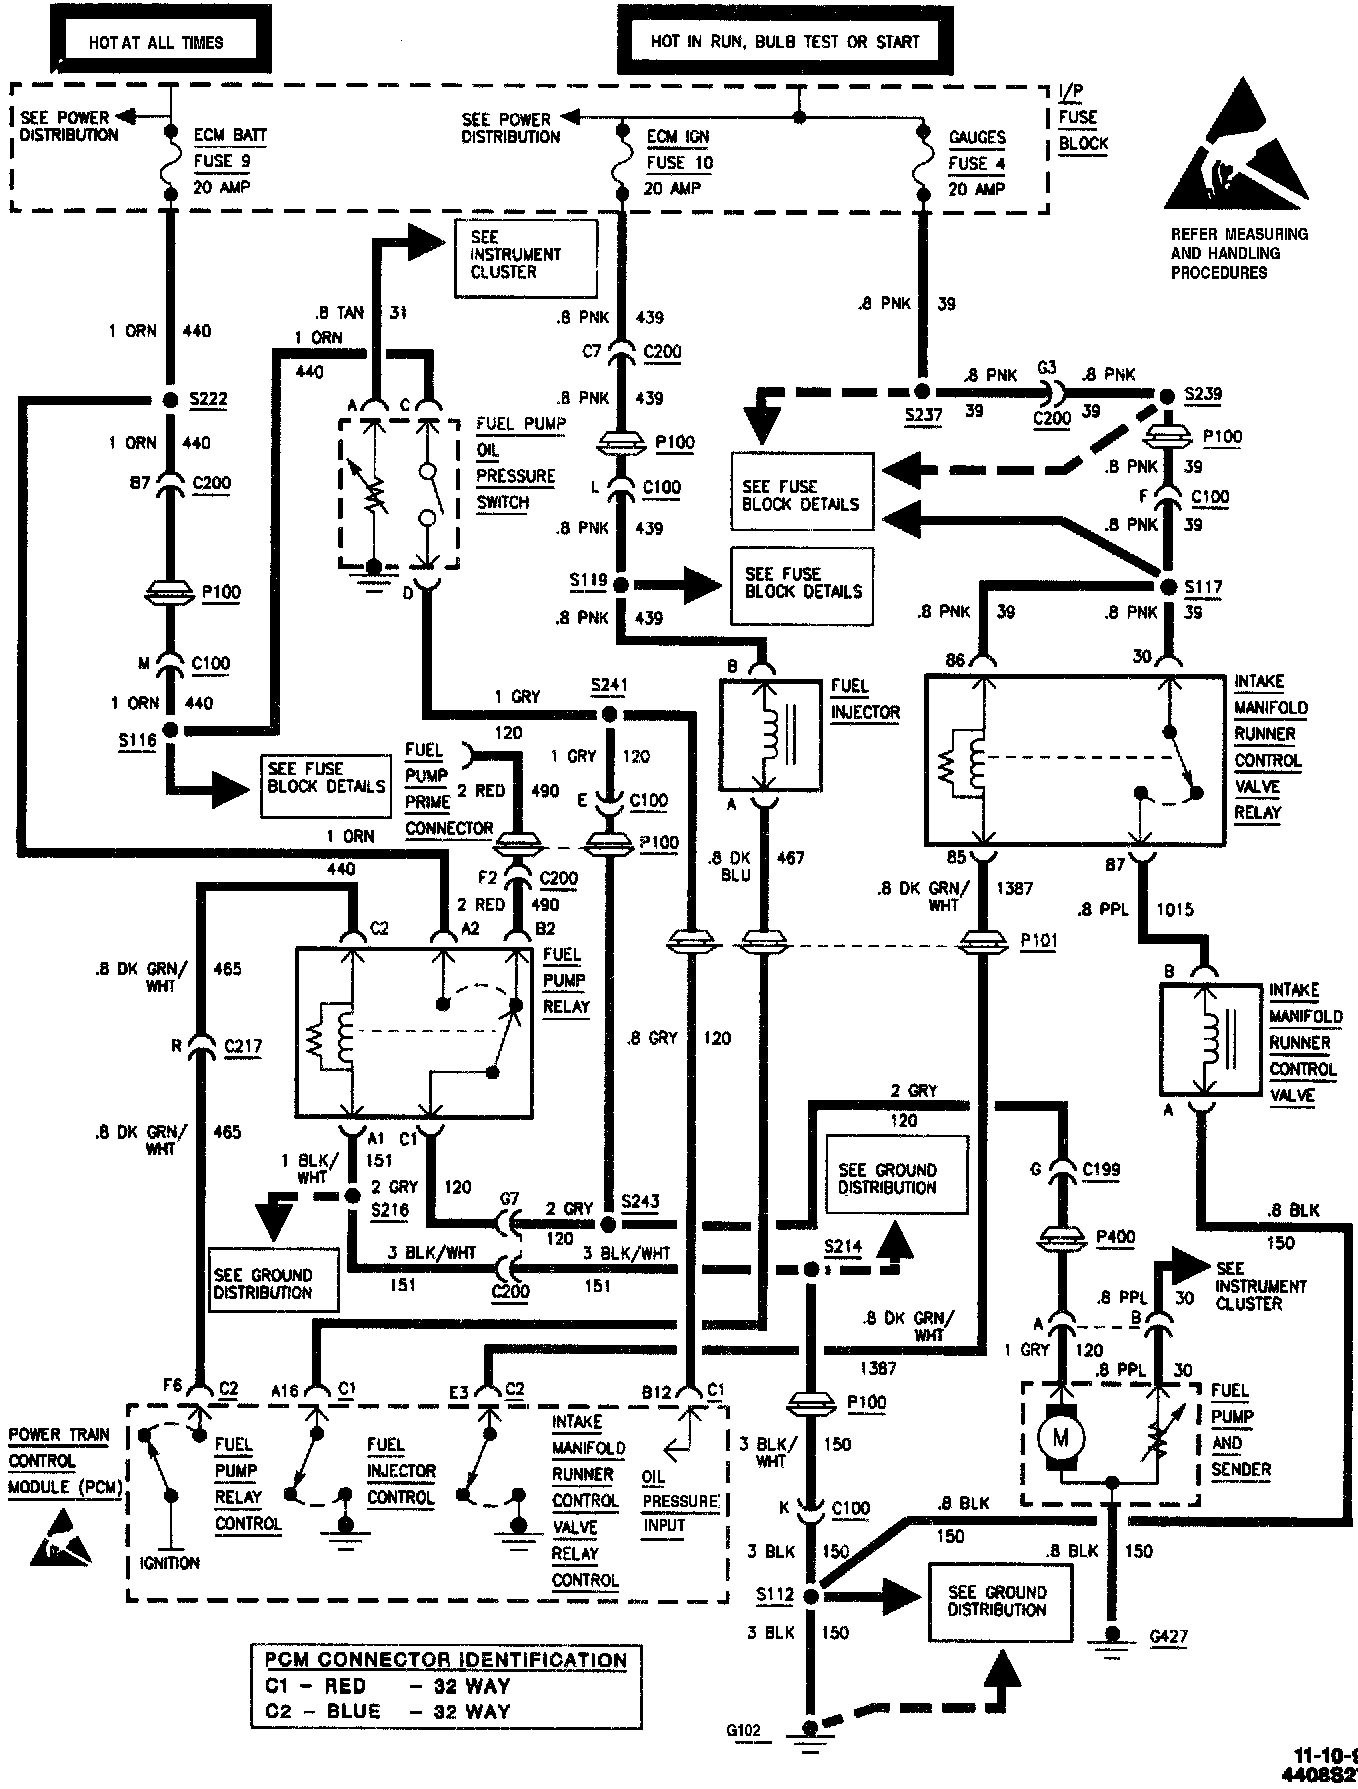 hight resolution of 2002 s10 wire harness wiring diagram paper 1999 chevy s10 wiring harness 1988 chevy s10 wiring